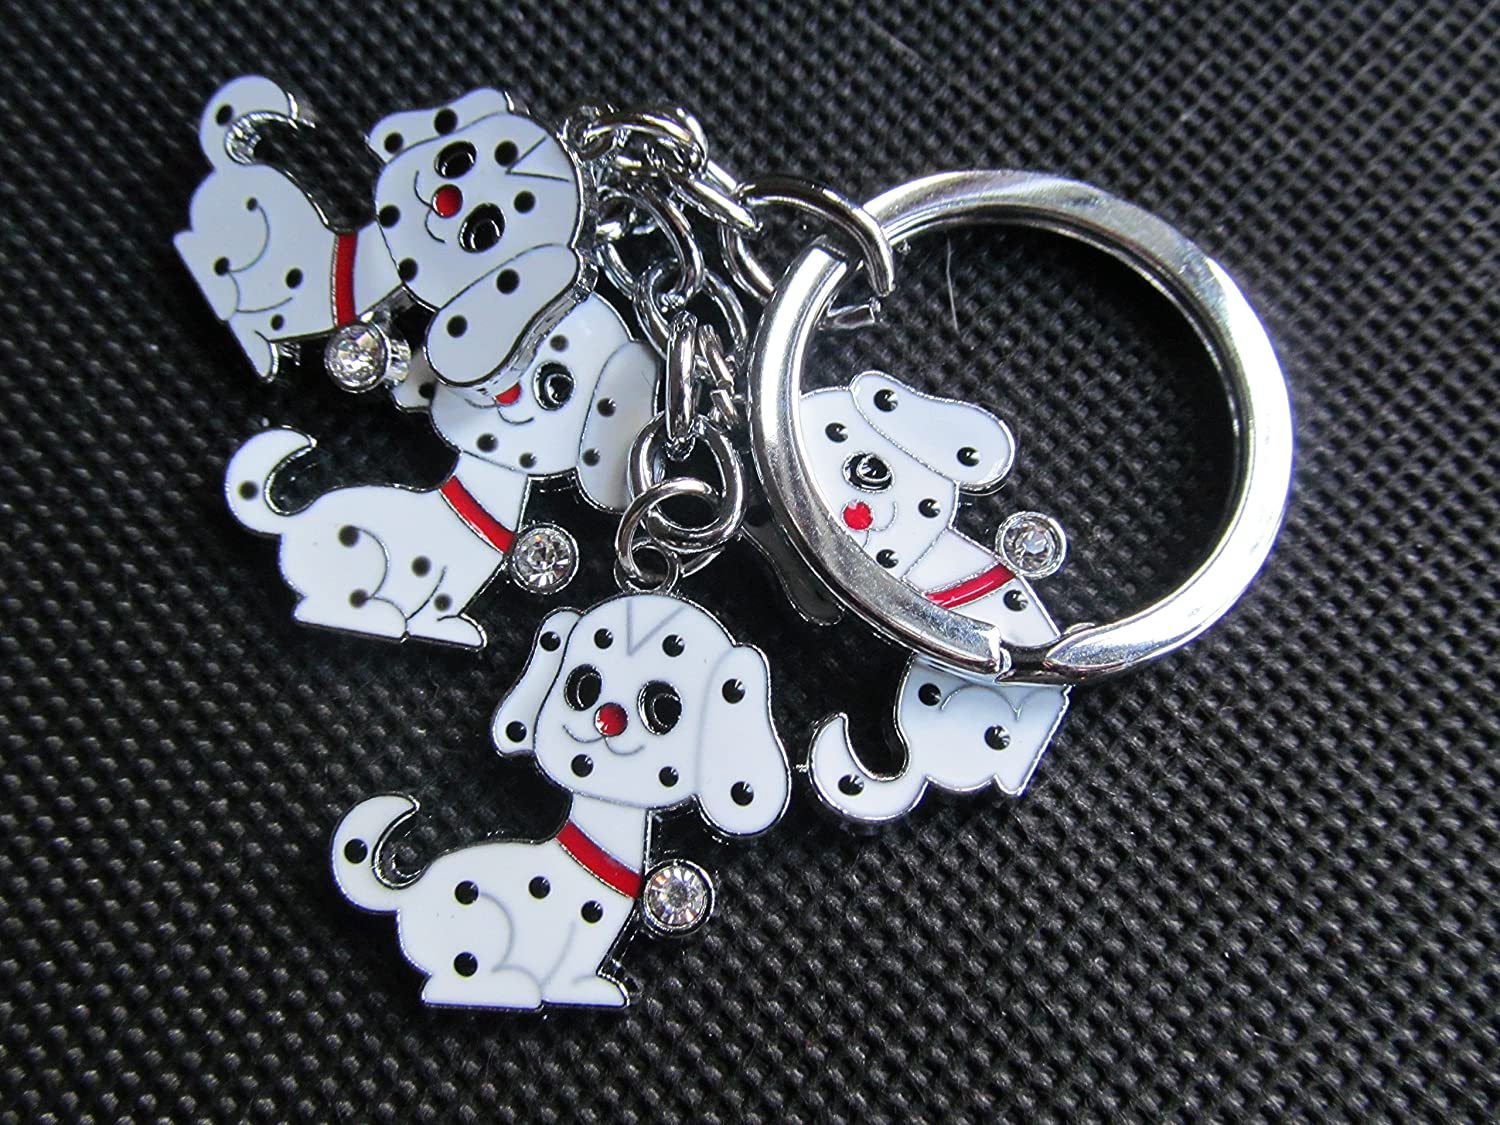 4 piece dalmatian dogs keyring key chain handbag charm - by Fat-catz-copy-catz 4 piece dalmation